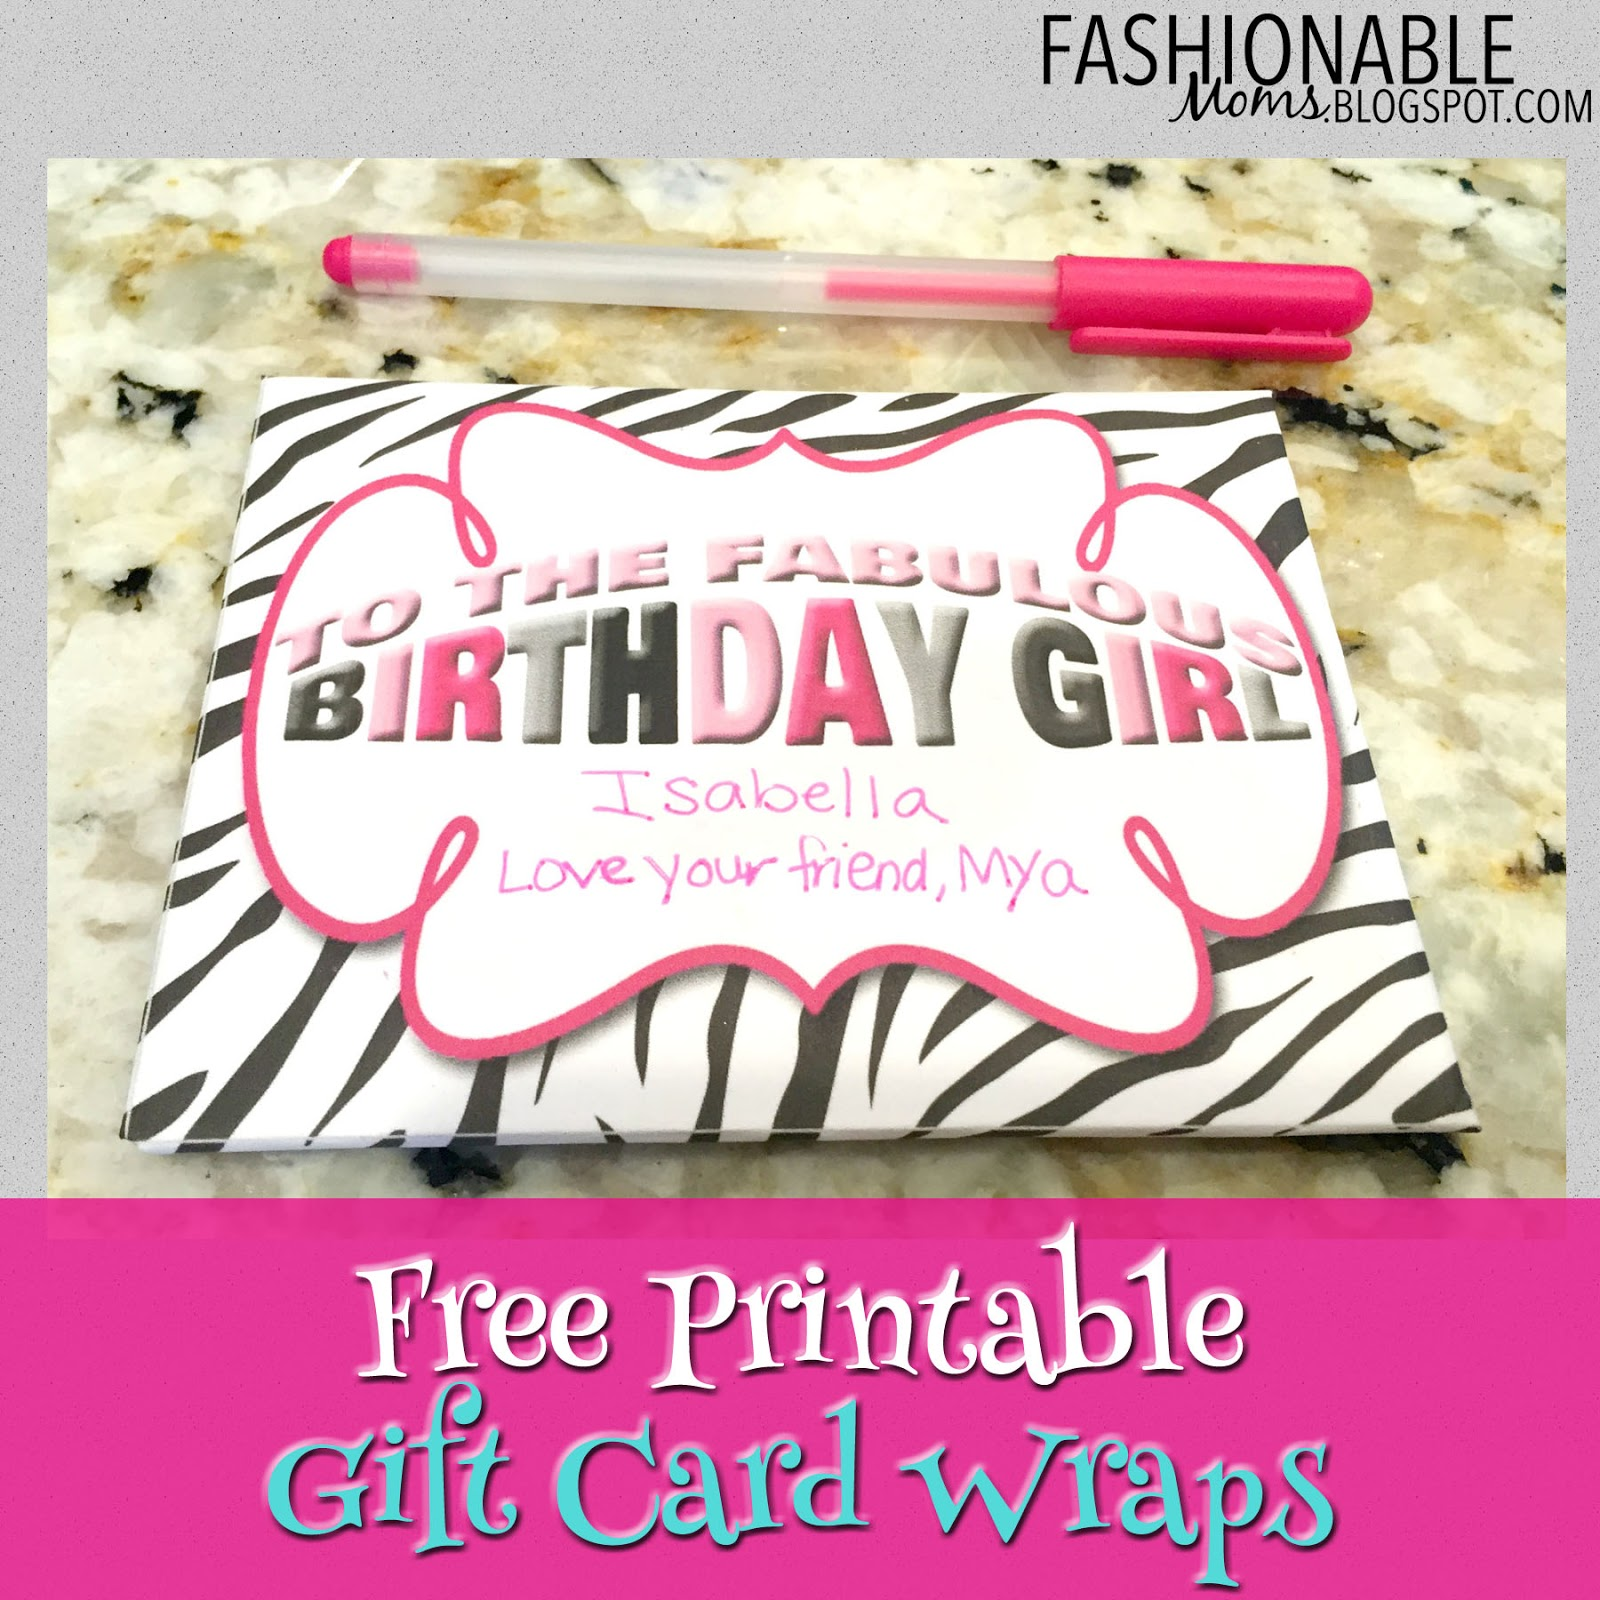 My fashionable designs july 2015 free printable gift card wraps 8 designs xflitez Image collections